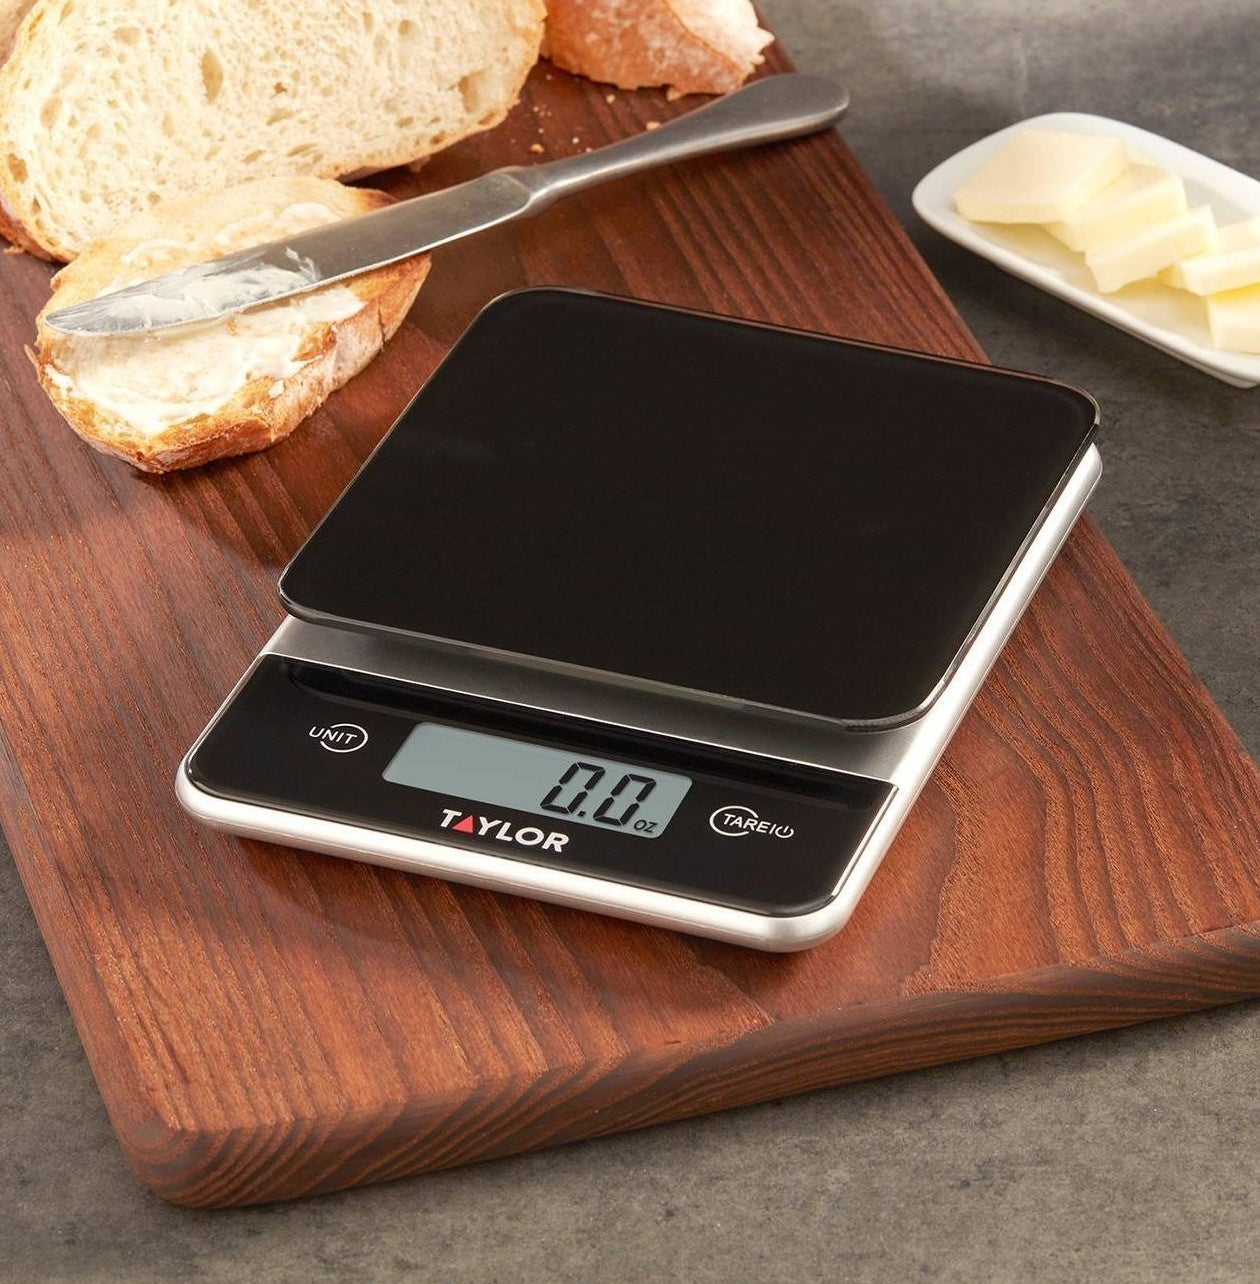 The food scale